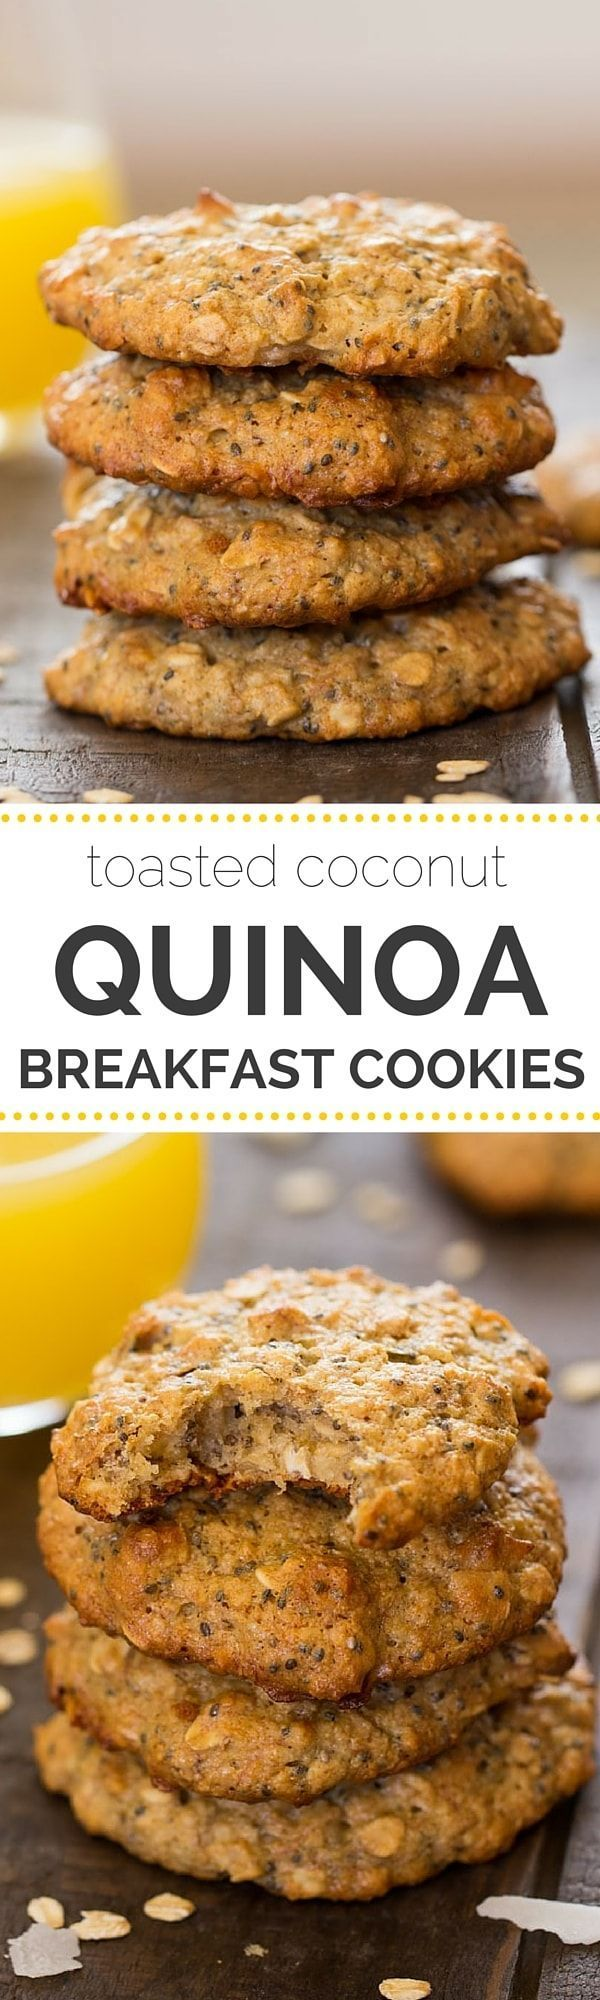 Toasted Coconut Quinoa Breakfast Cookies - these flourless cookies are packed with fiber, naturally sweetened and are gluten-free!